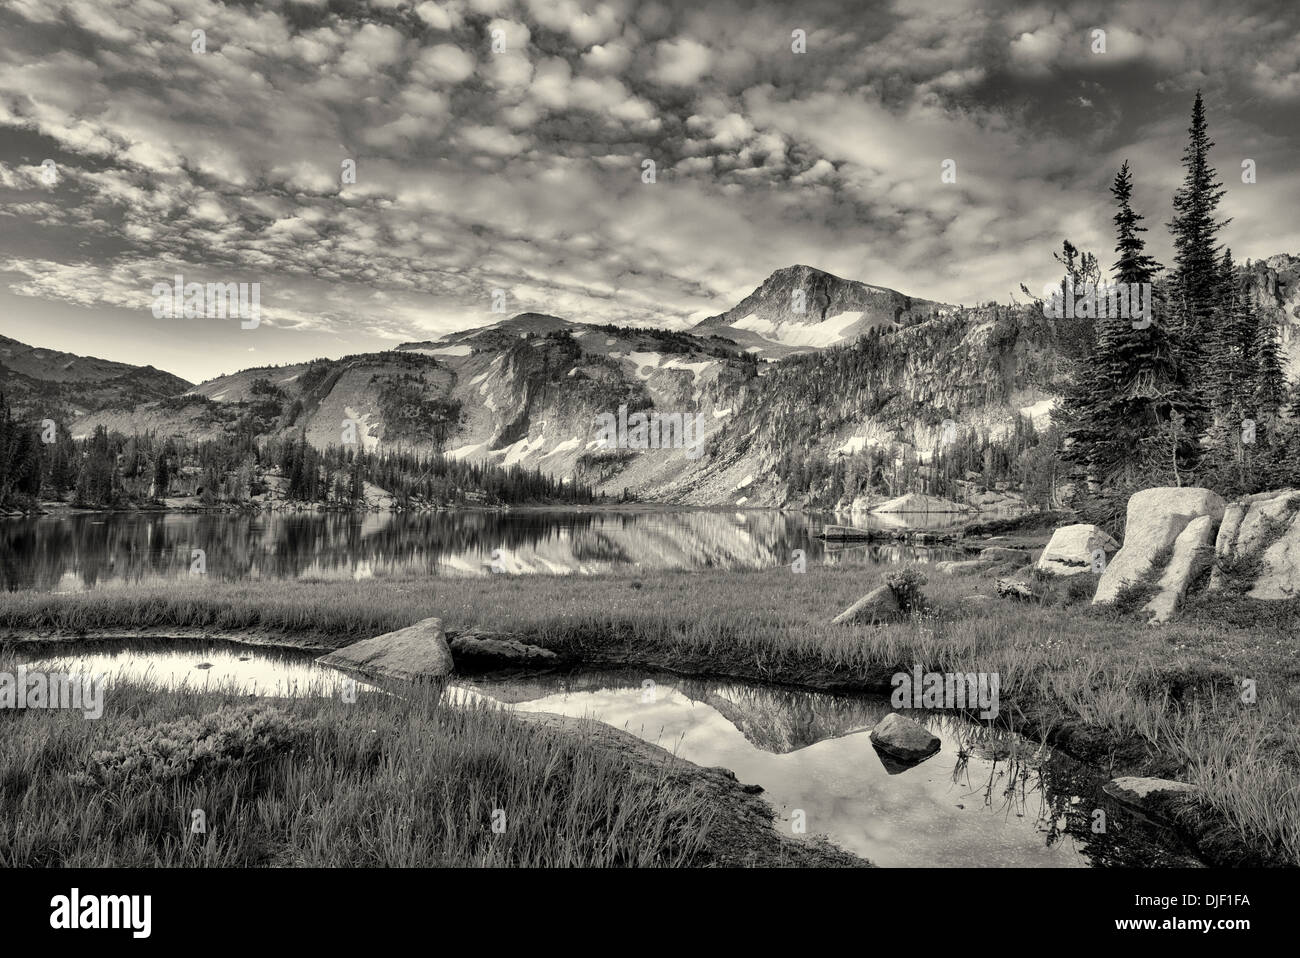 Evening light and reflection in small stream and Mirror Lake with Eagle Cap Mountain. Eagle Cap Wilderness, Oregon - Stock Image